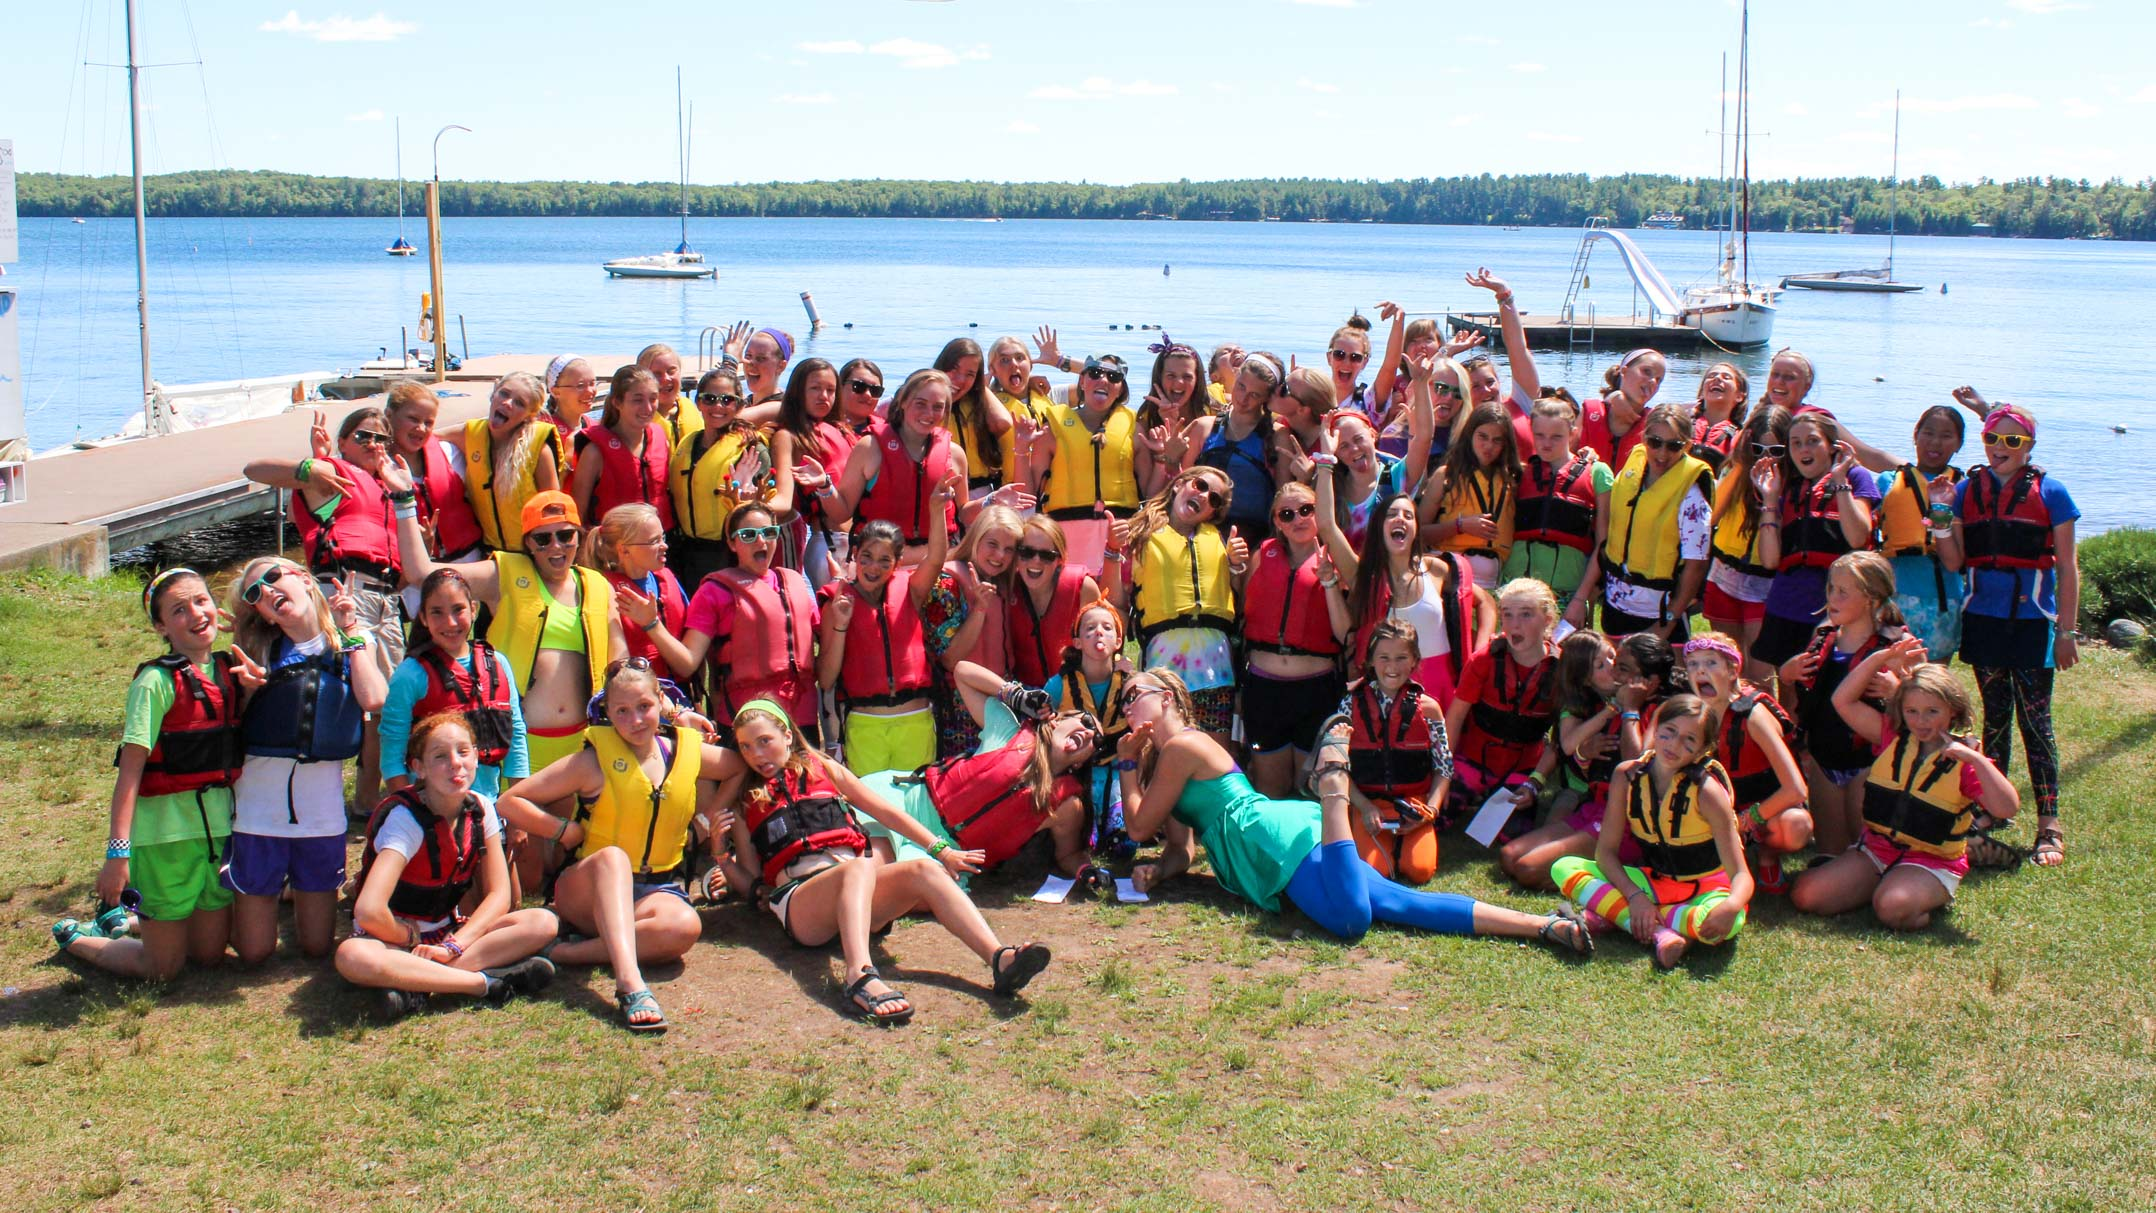 Group of campers pose in front of waterfront in life jackets